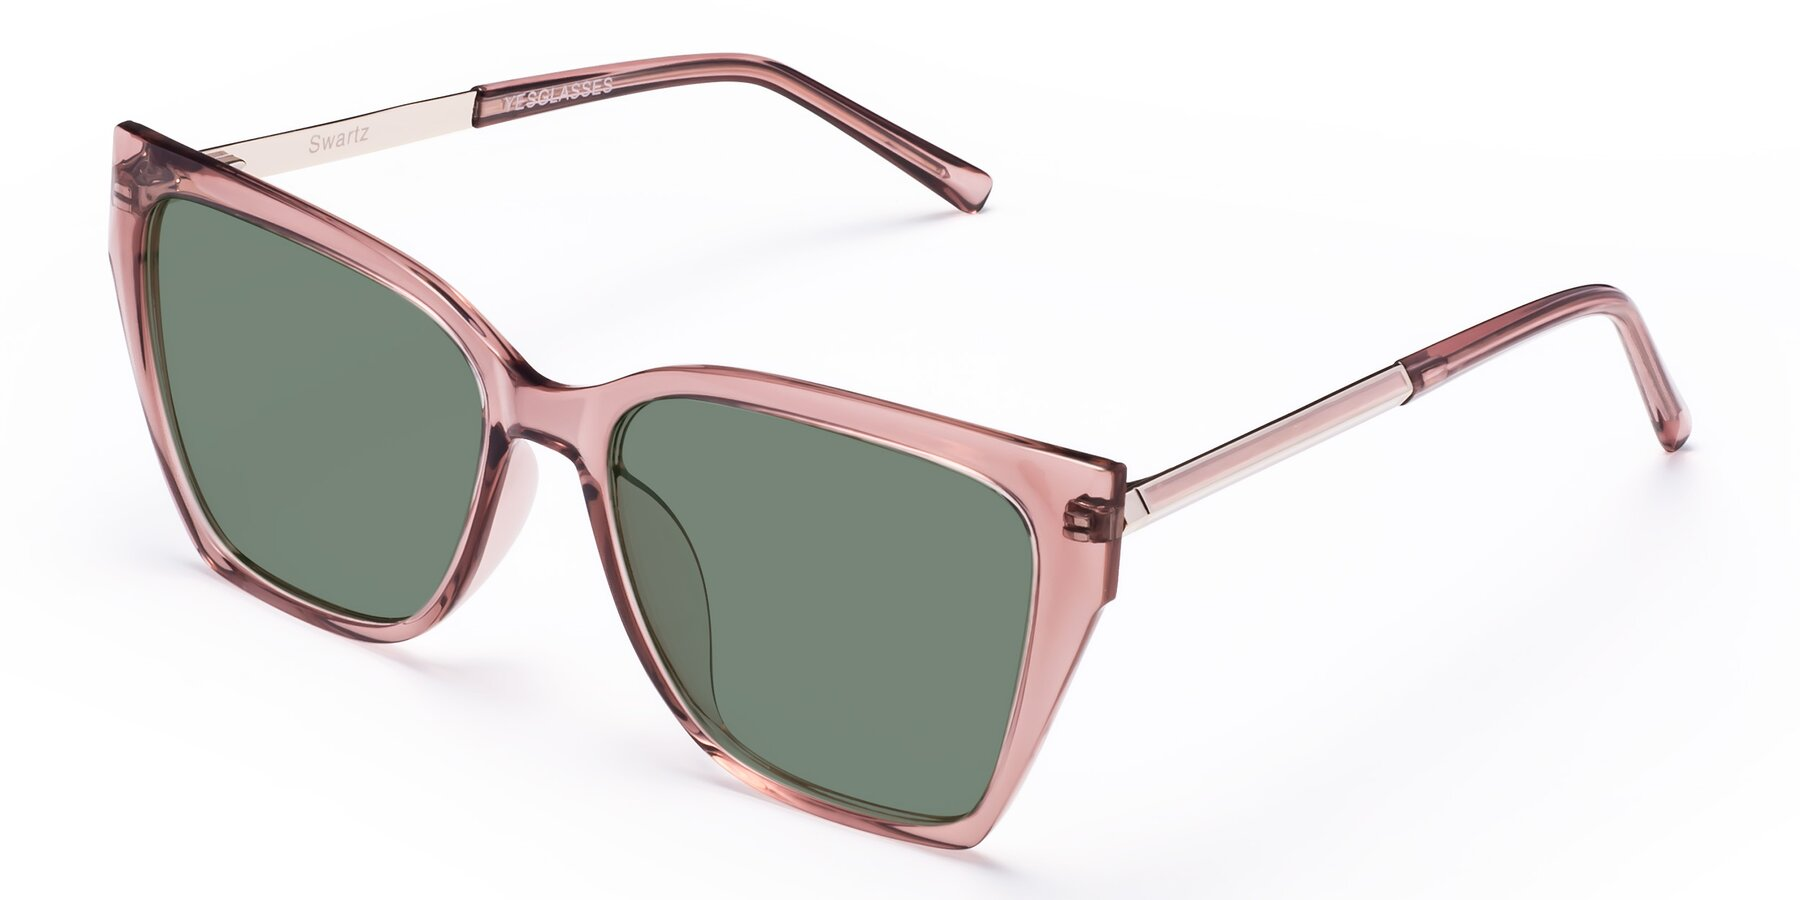 Angle of Swartz in Grape with Medium Green Tinted Lenses